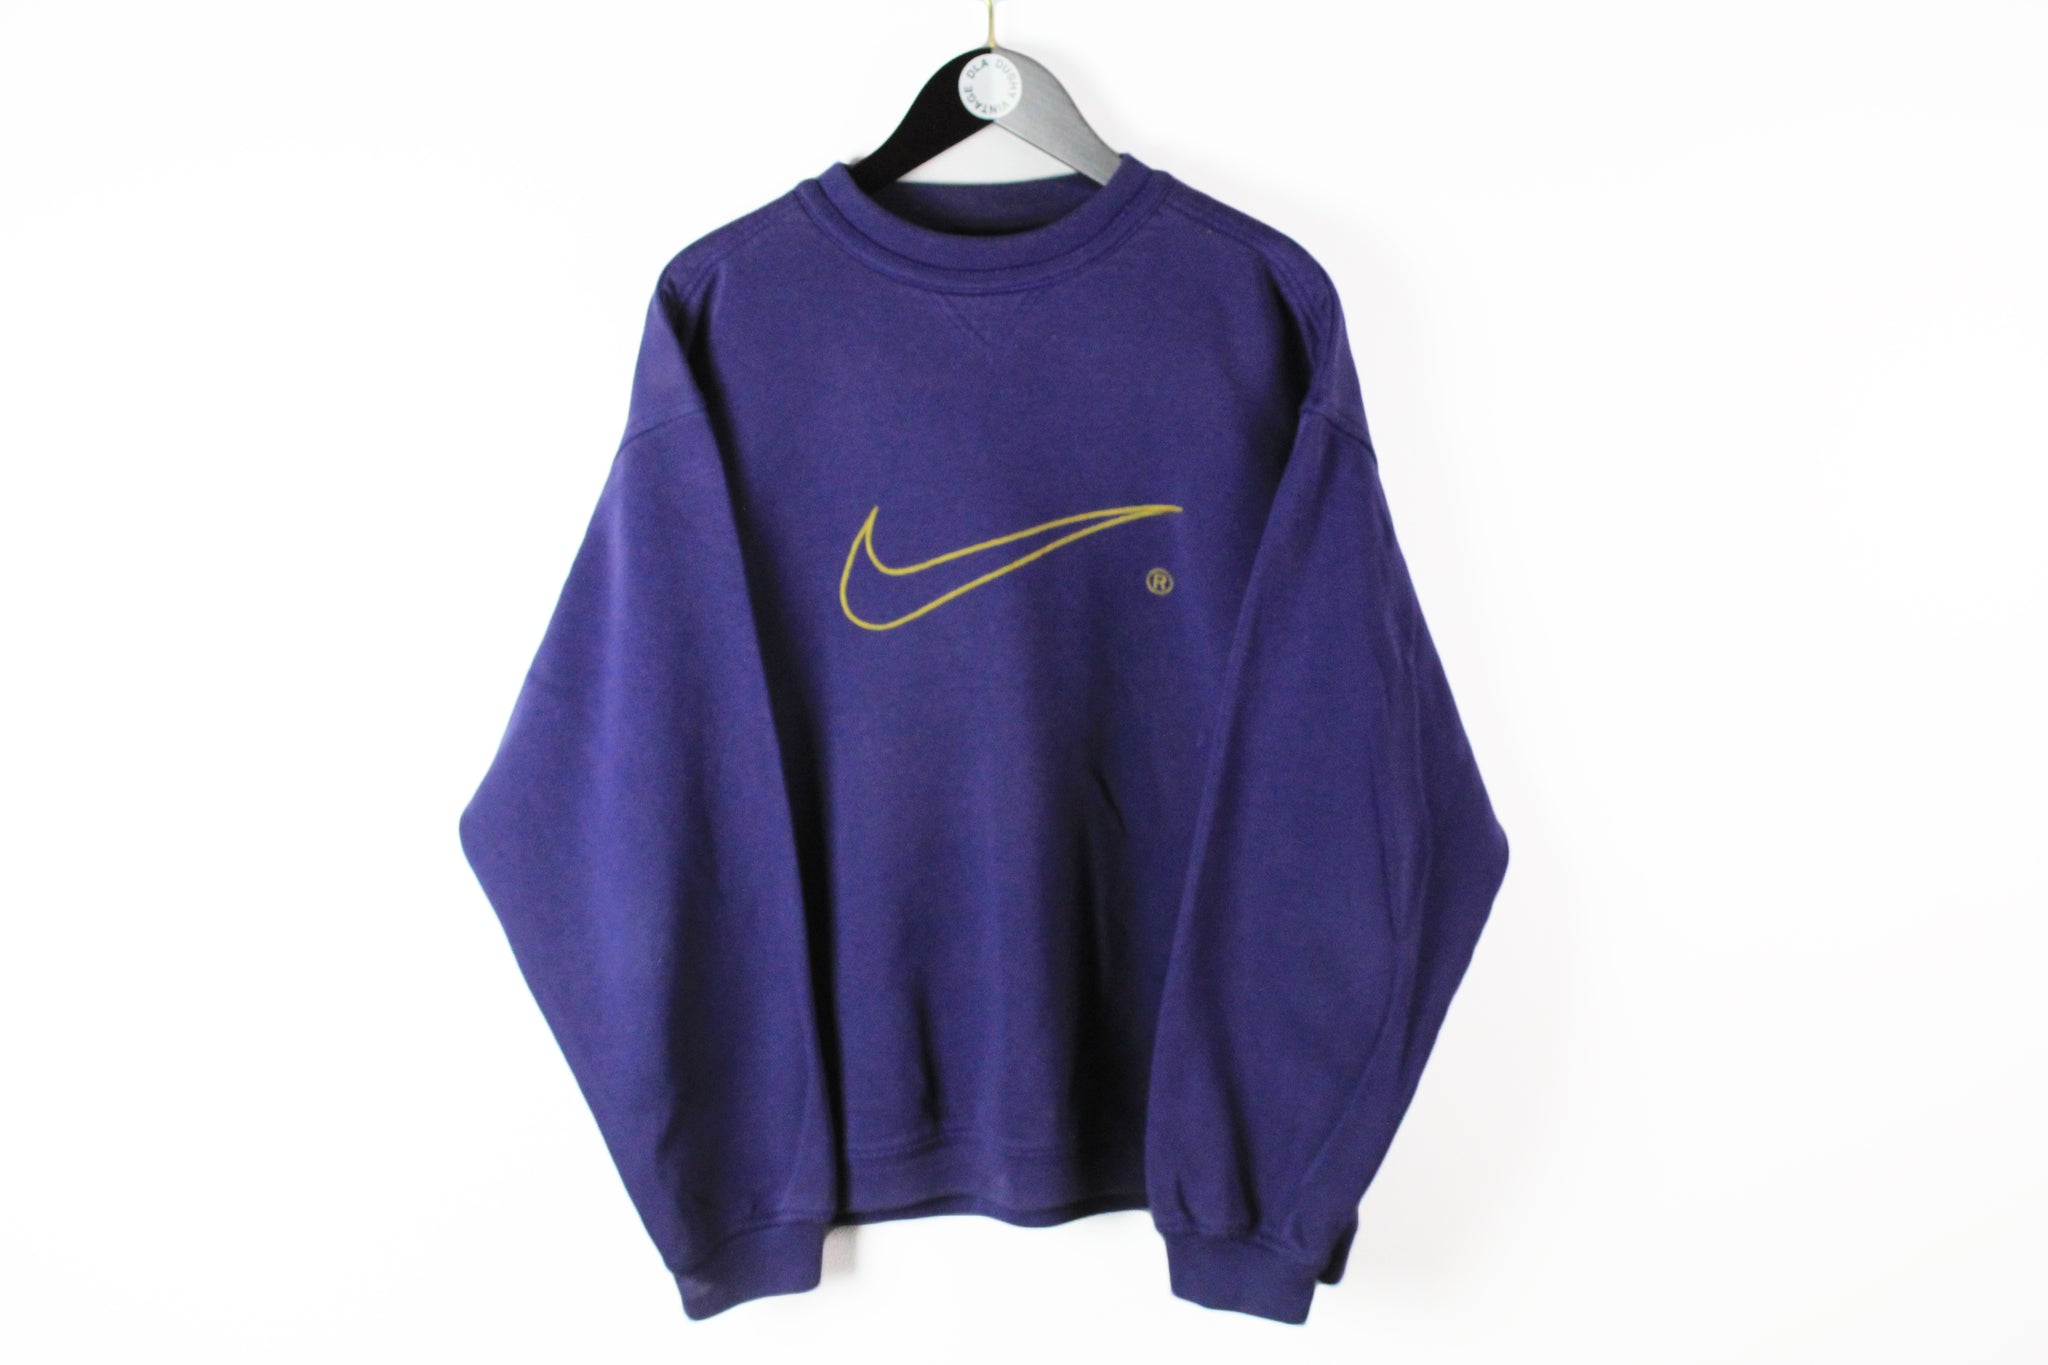 Vintage Nike Sweatshirt Large purple swoosh gold big logo 90s sport rare retro style USA jumper crew neck